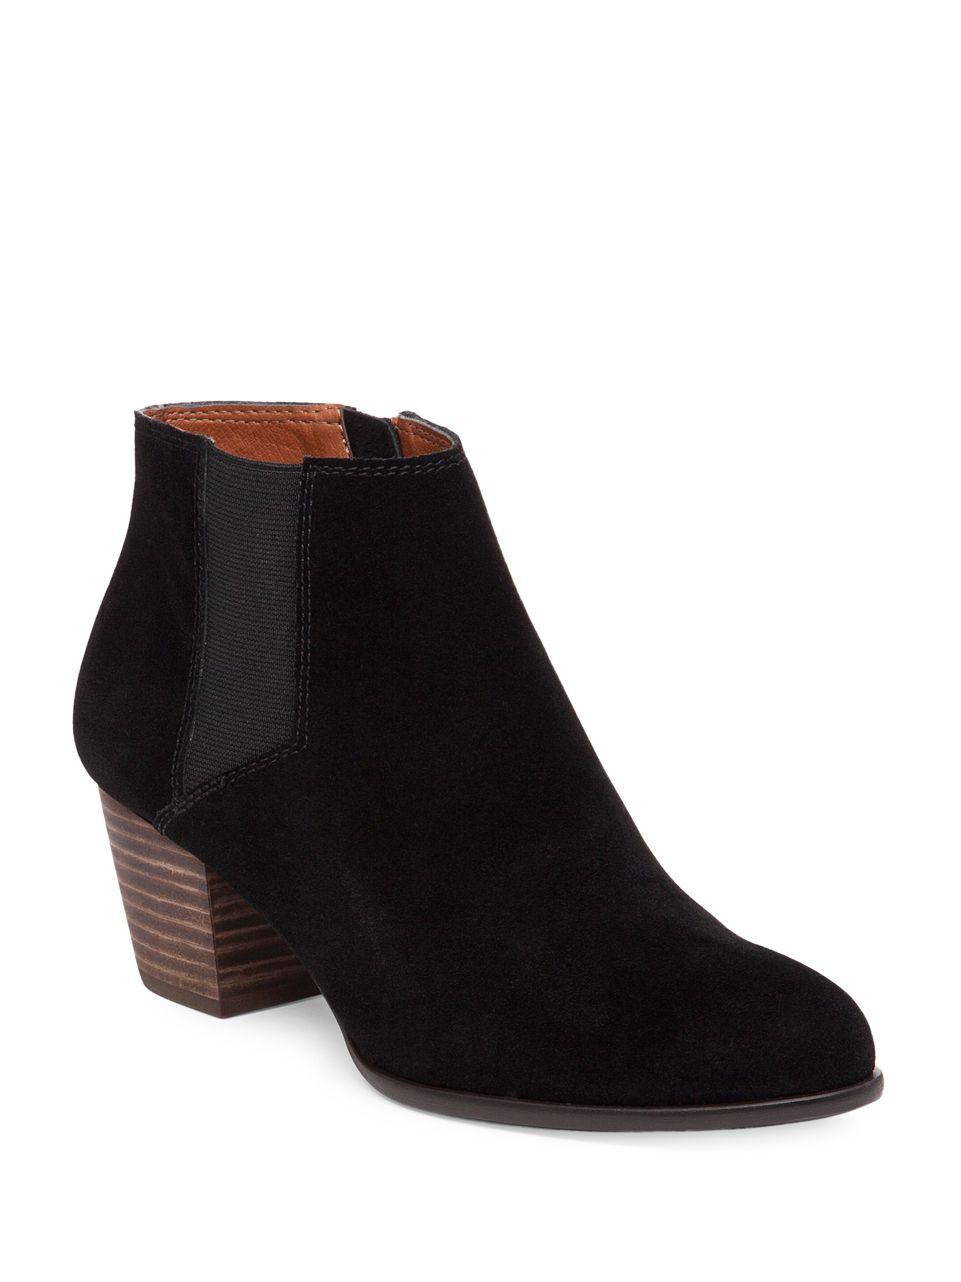 Lucky Brand Shoes Uk